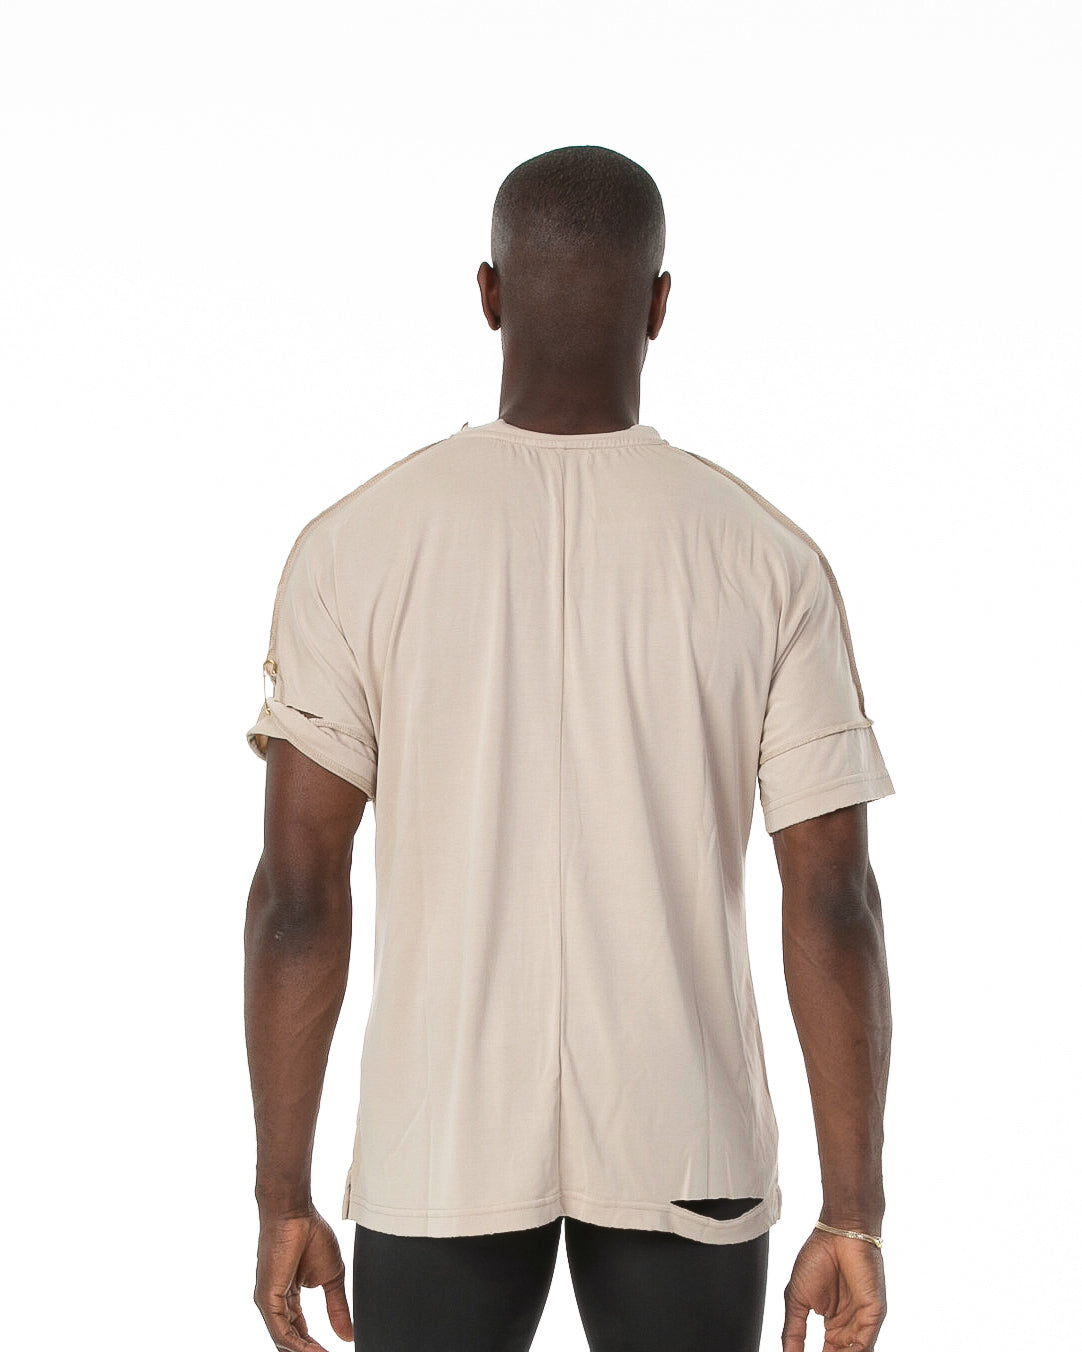 Backside of male model wearing Run Tee in Natural